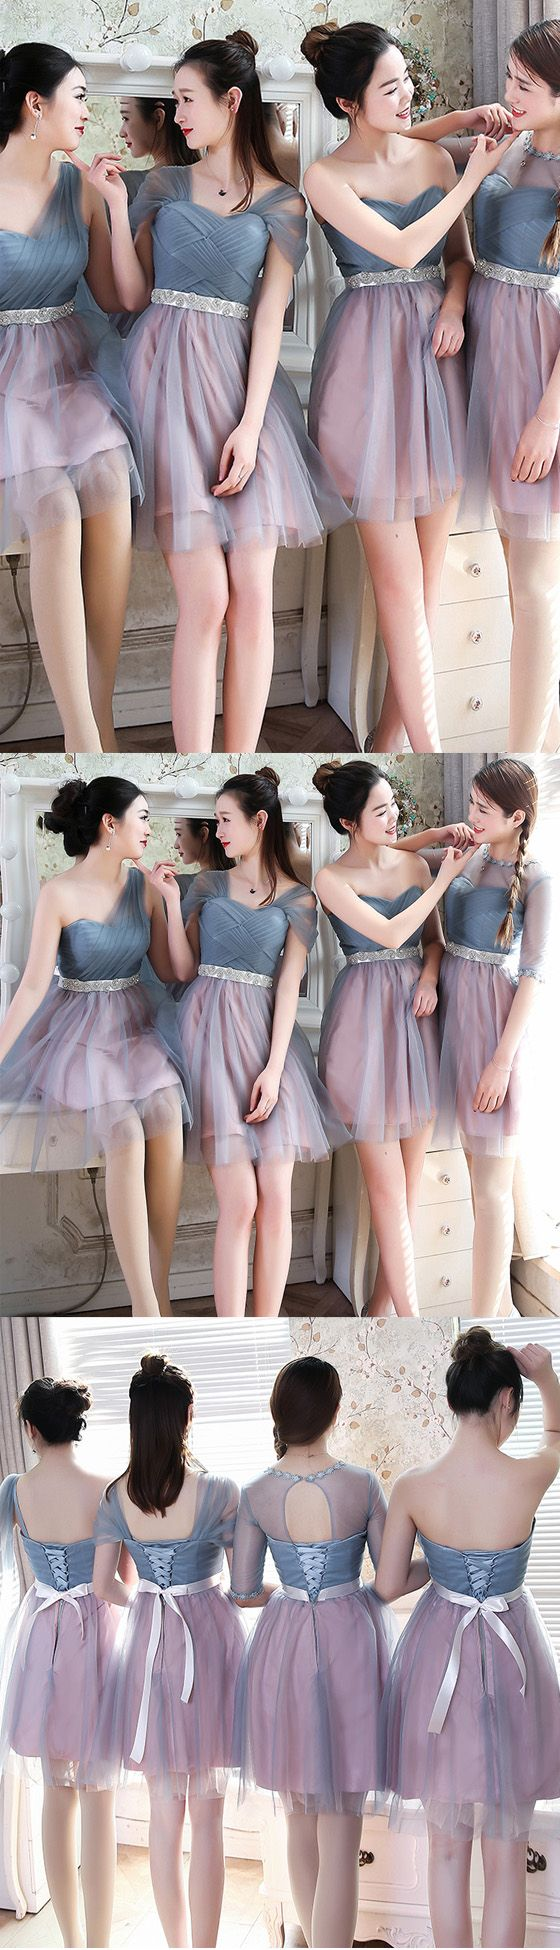 Short bridesmaid dress, mismatched bridesmaid dress, charming bridesmaid dresses, lovely bridesmaid dress, wedding party dresses, PD15489 #bridesmaid #bridesmaidsdress #wedding #weddingpartydress